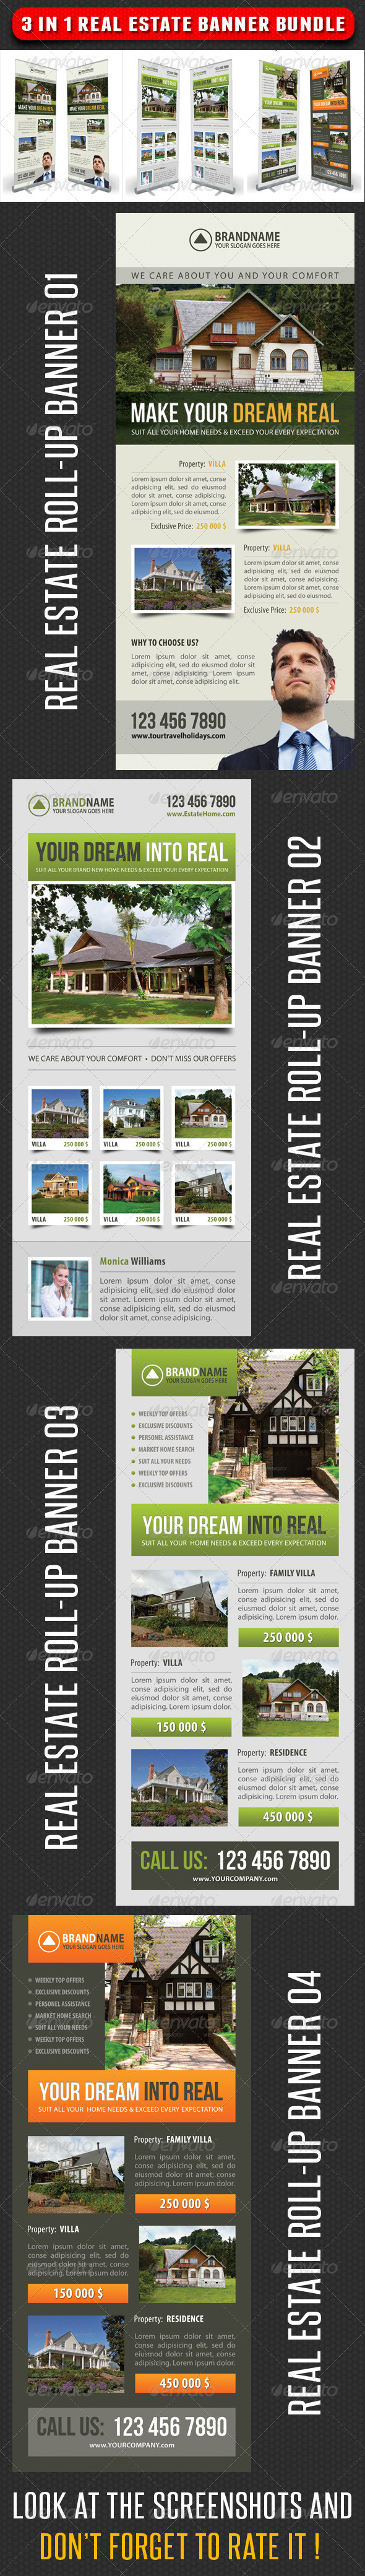 3 in 1 Real Estate Banner Bundle 03 - Signage Print Templates